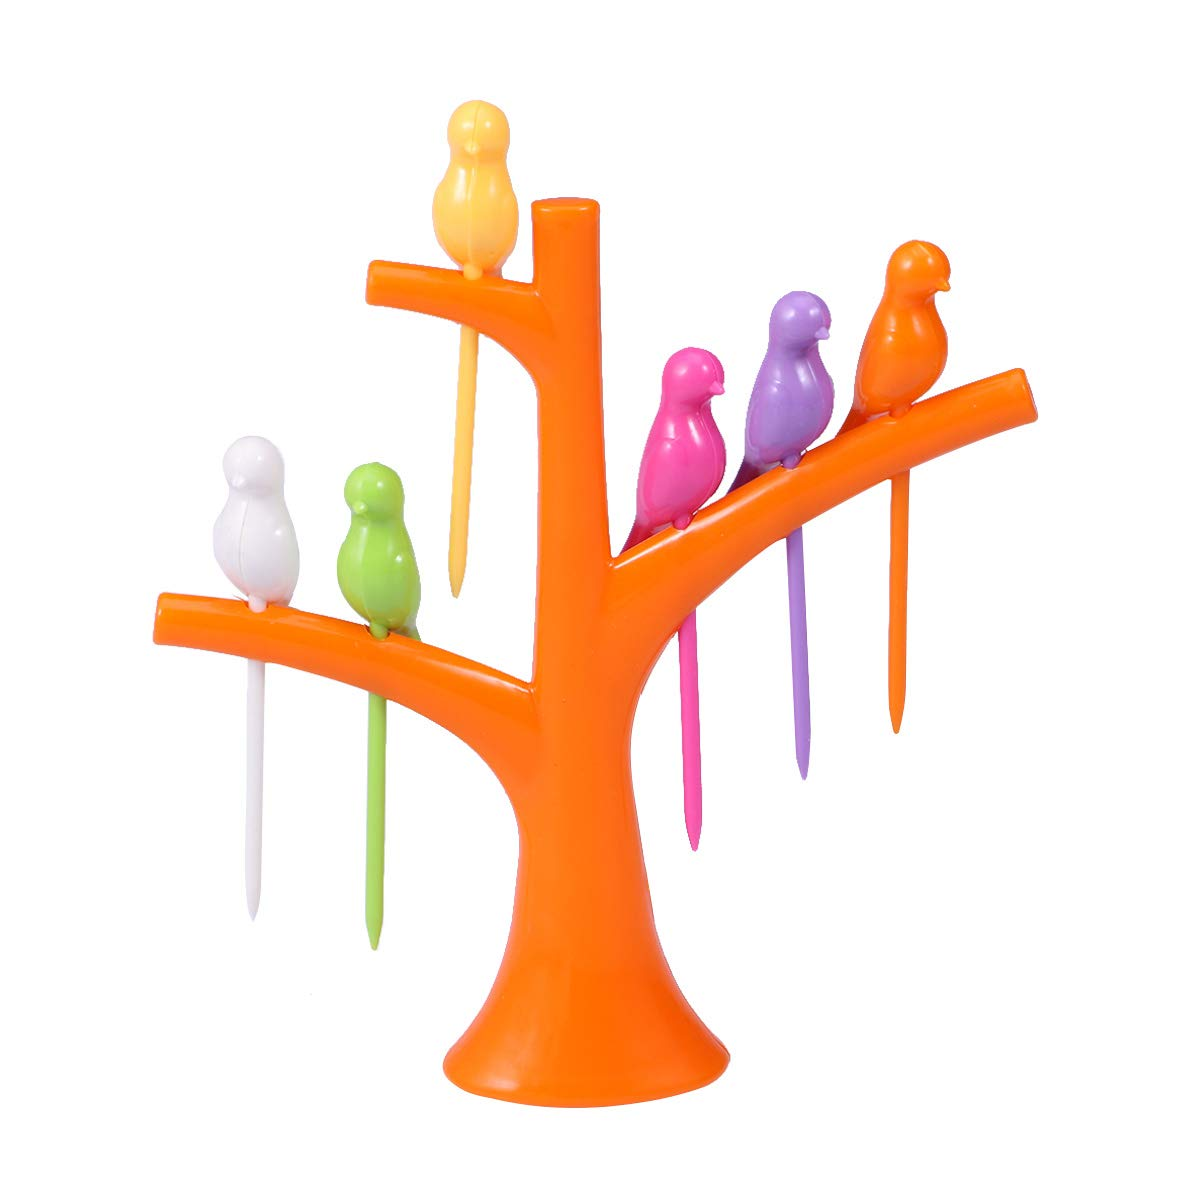 6PCS Bird Shaped Plastic Fruit Forks and 1PC Tree Shaped Holder Toothpick Fruit Tool for Party Home Decor (Orange)